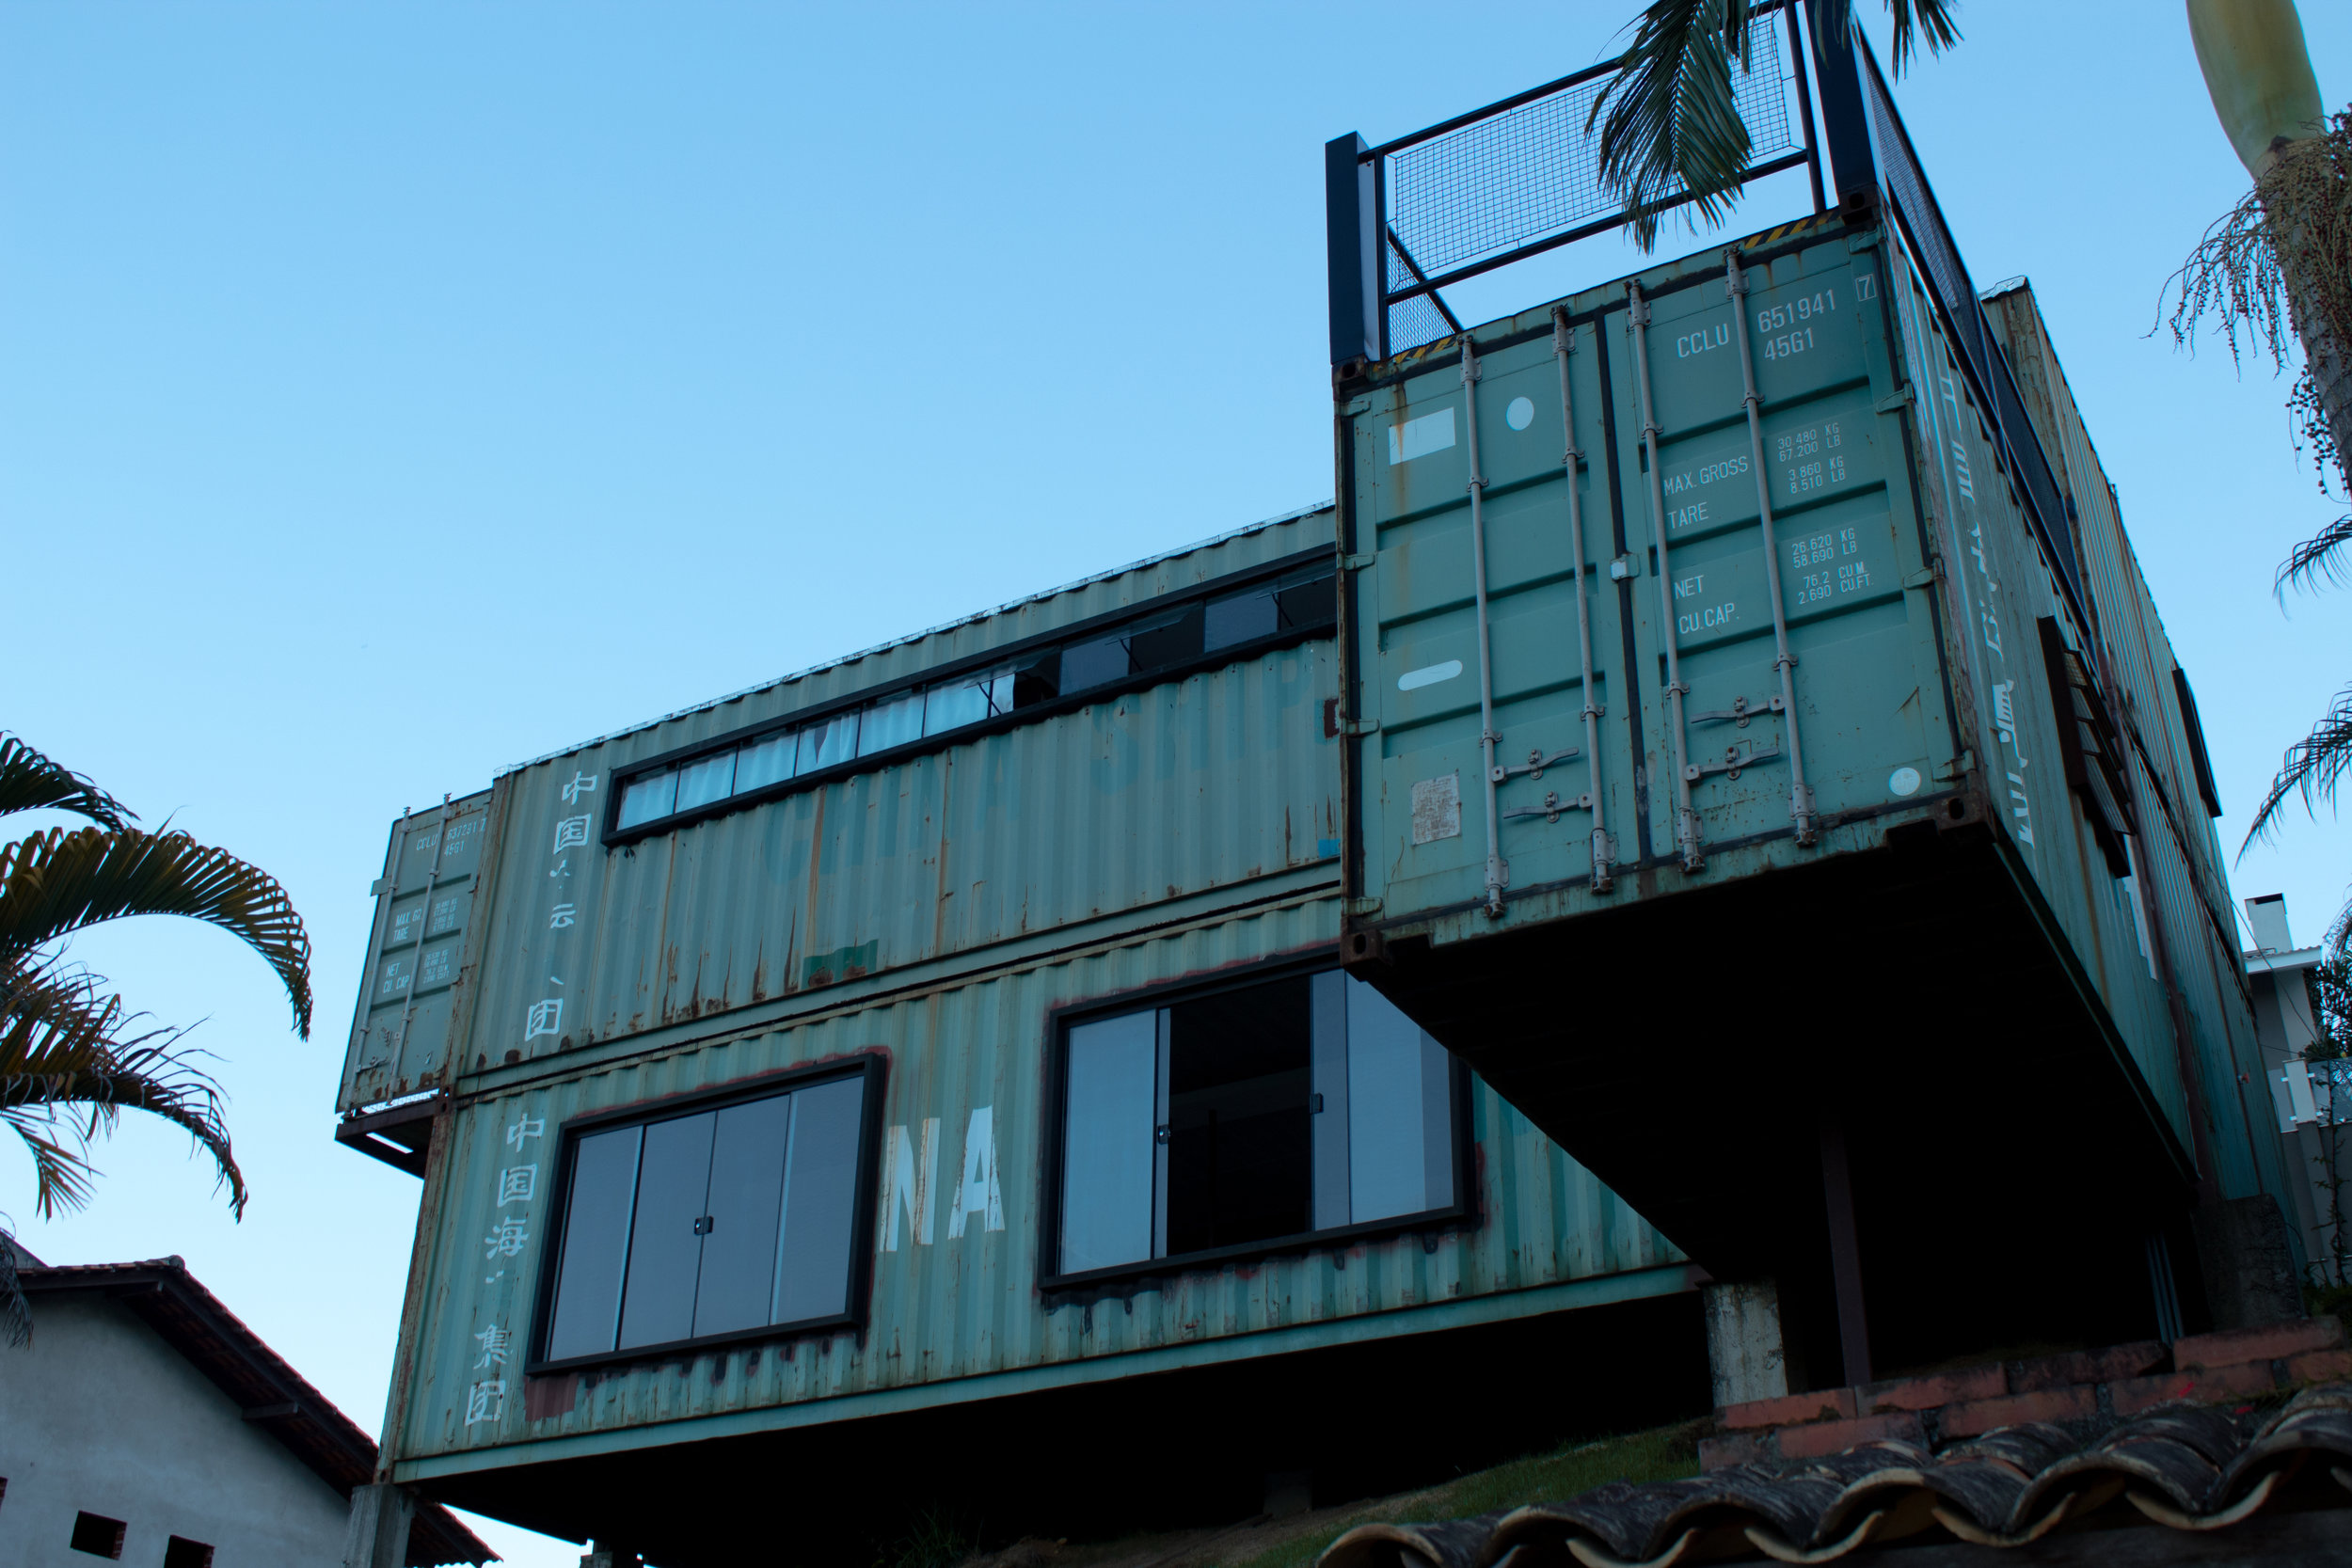 shipping container home.jpg